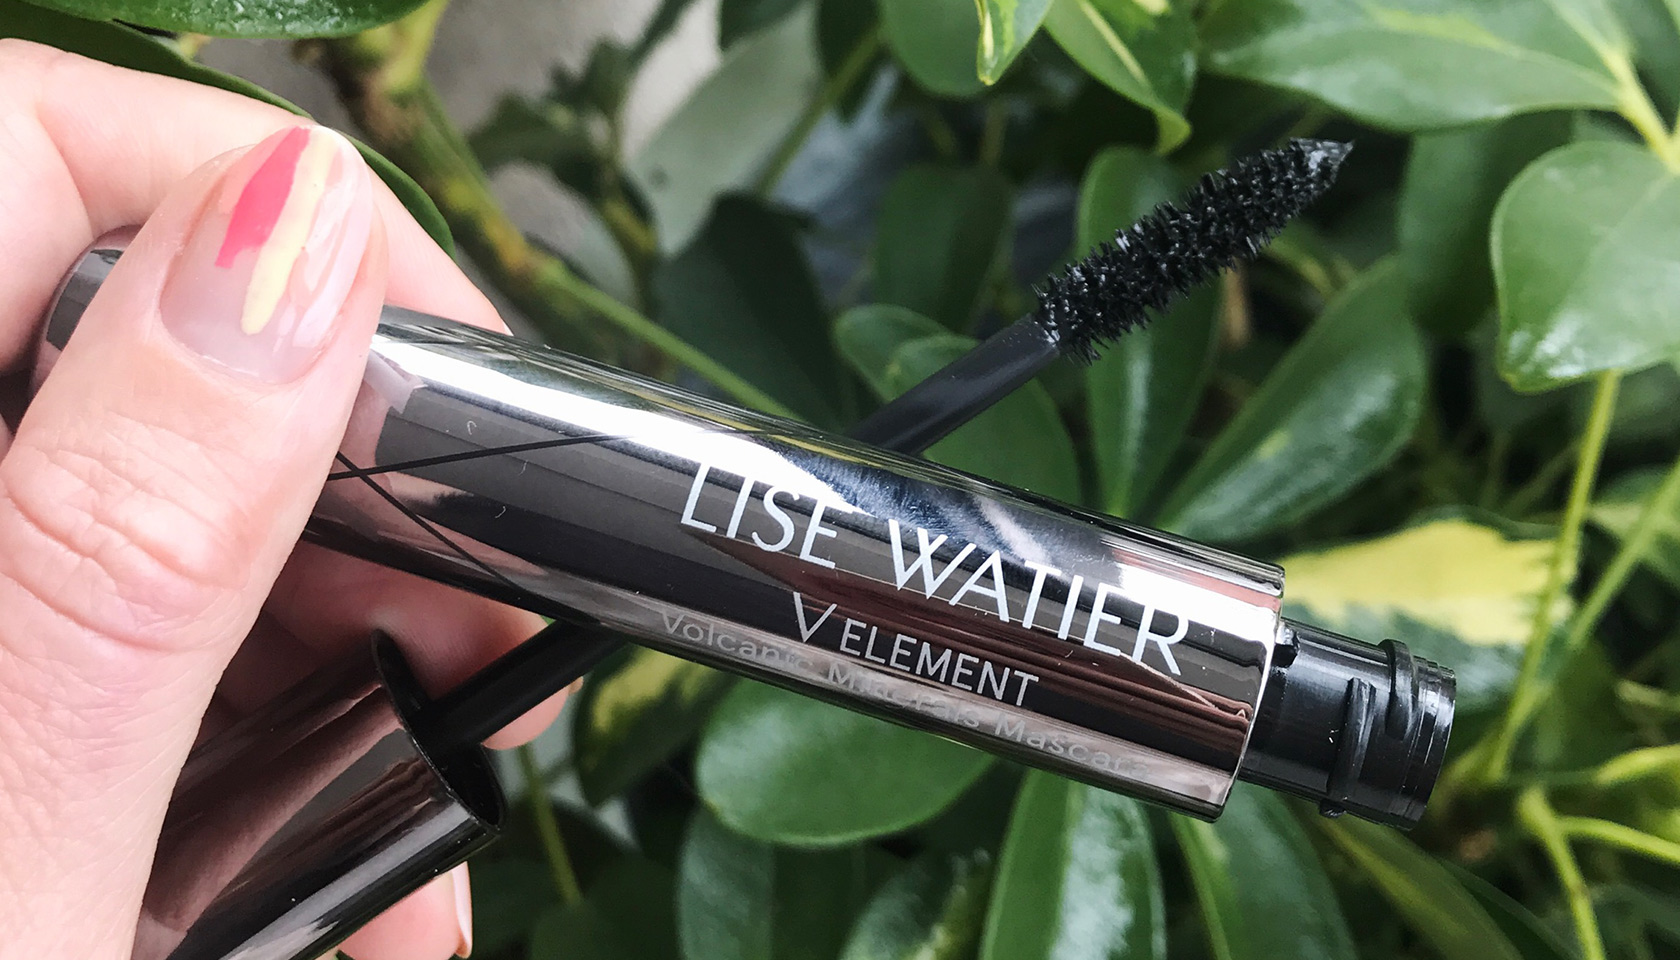 Mascara for maximum volume